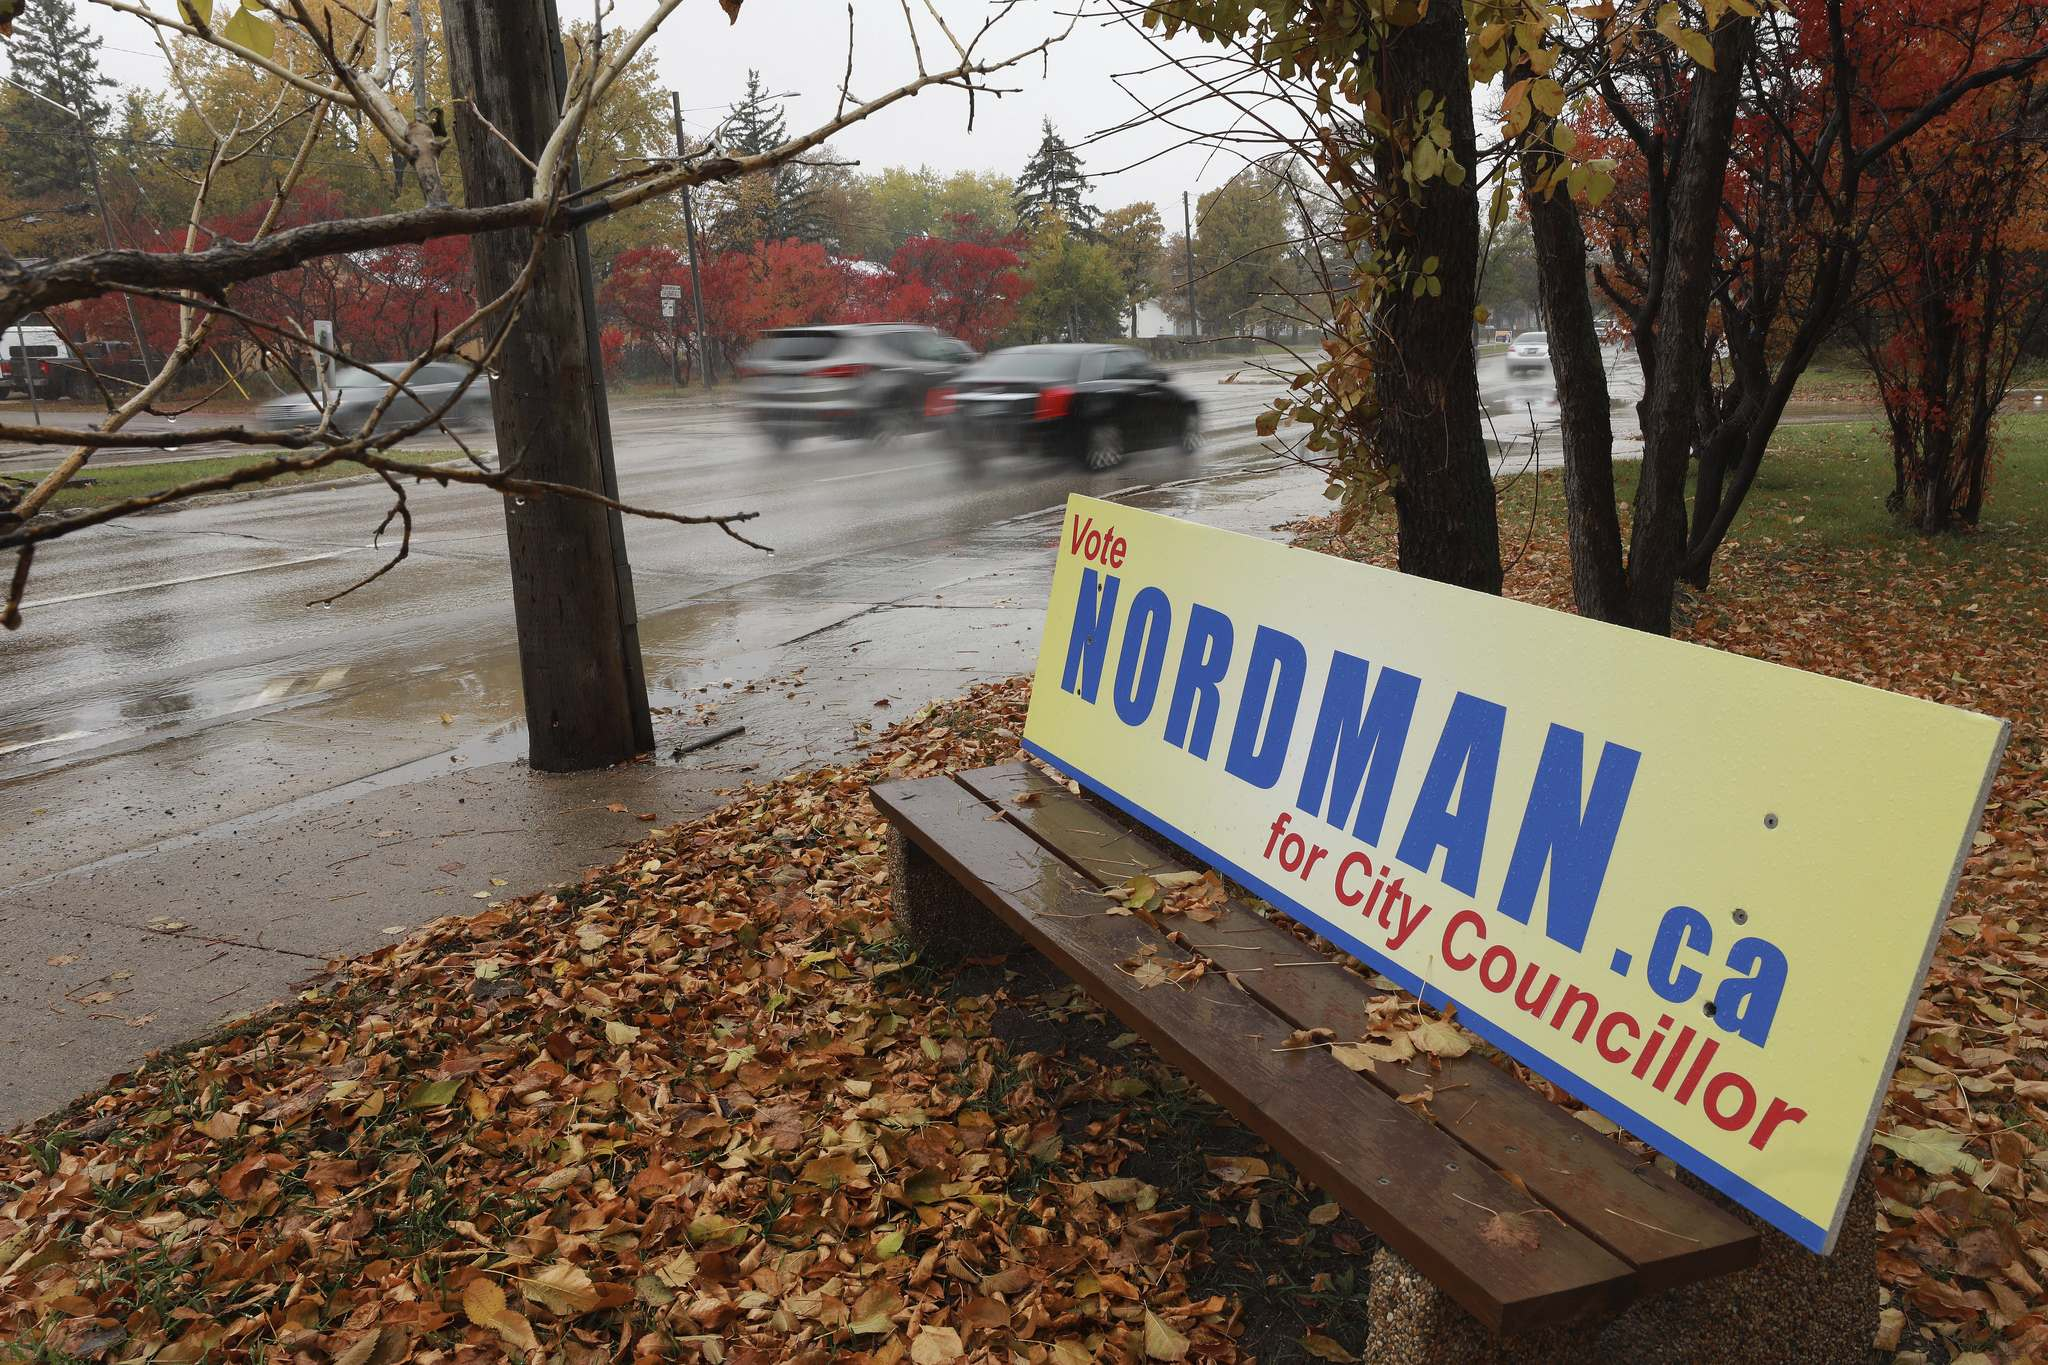 Grant Nordman started advertising on bus benches prior to registering as a candidate, which is a violation of civic election laws. (Ruth Bonneville / Winnipeg Free Press files)</p>